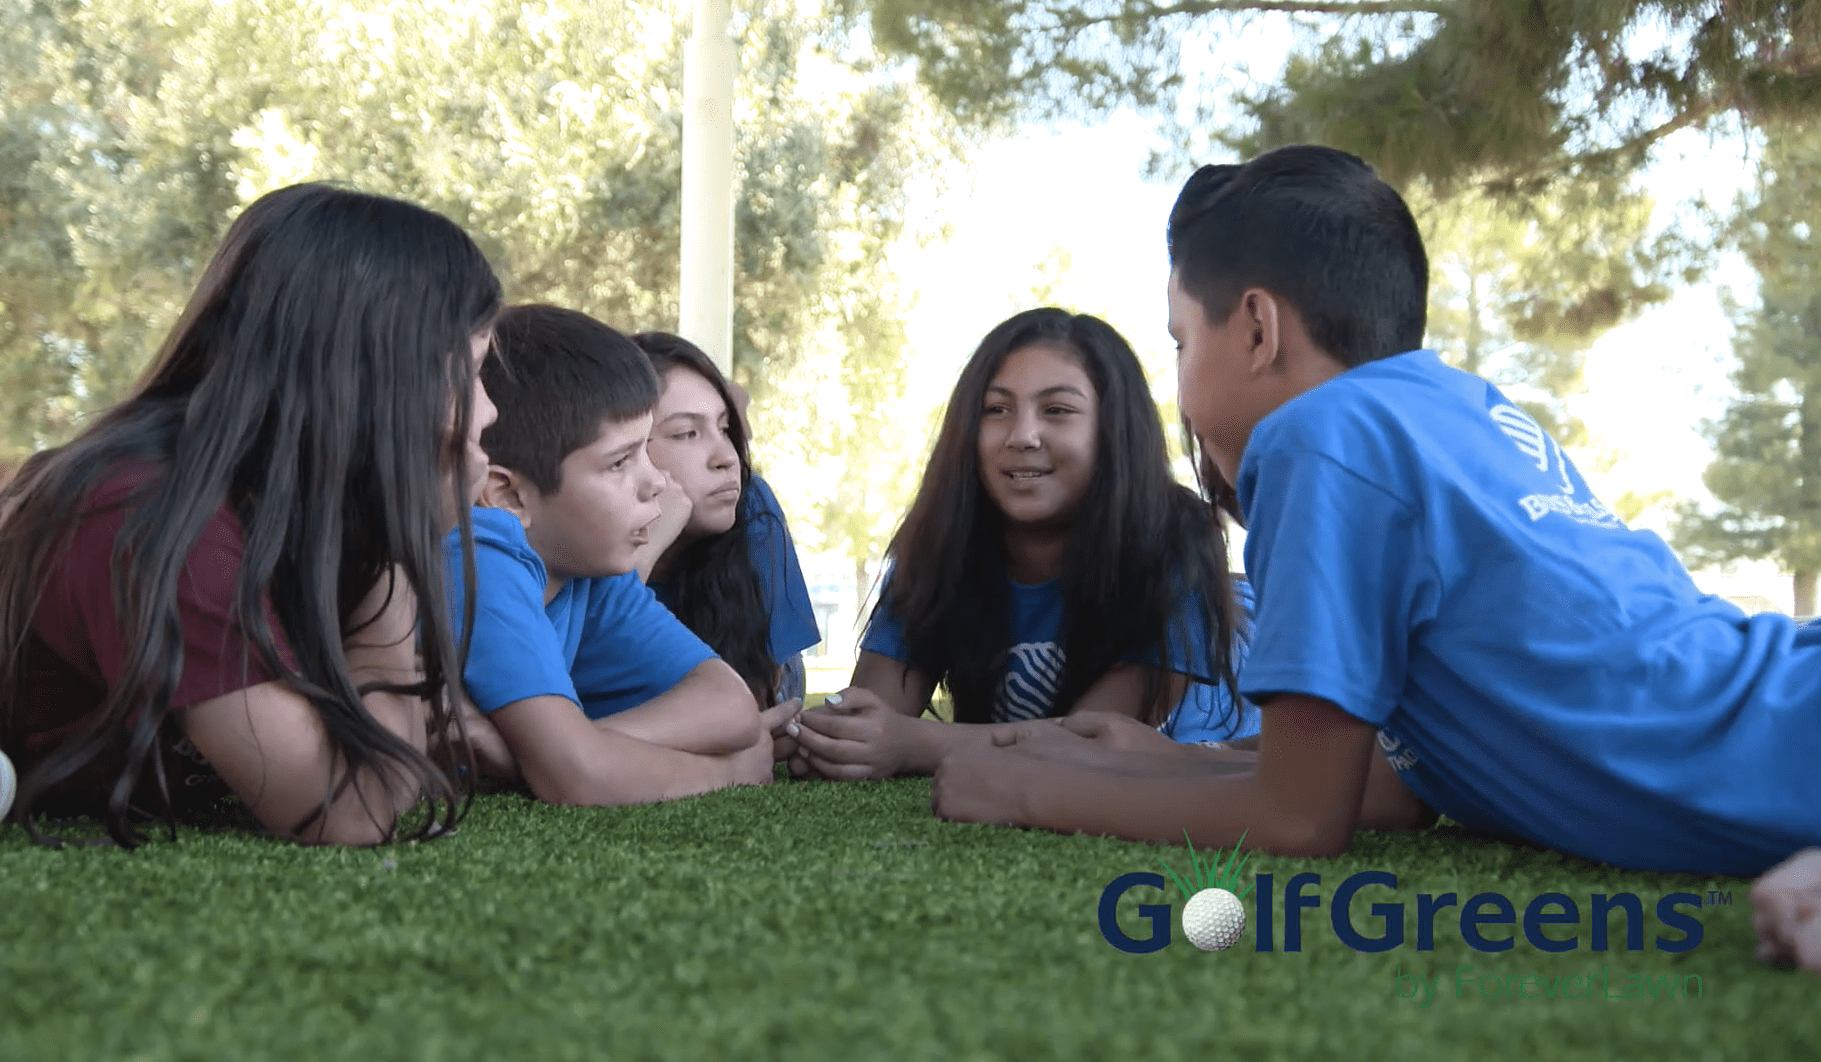 Boys and Girls Club with GolfGreens